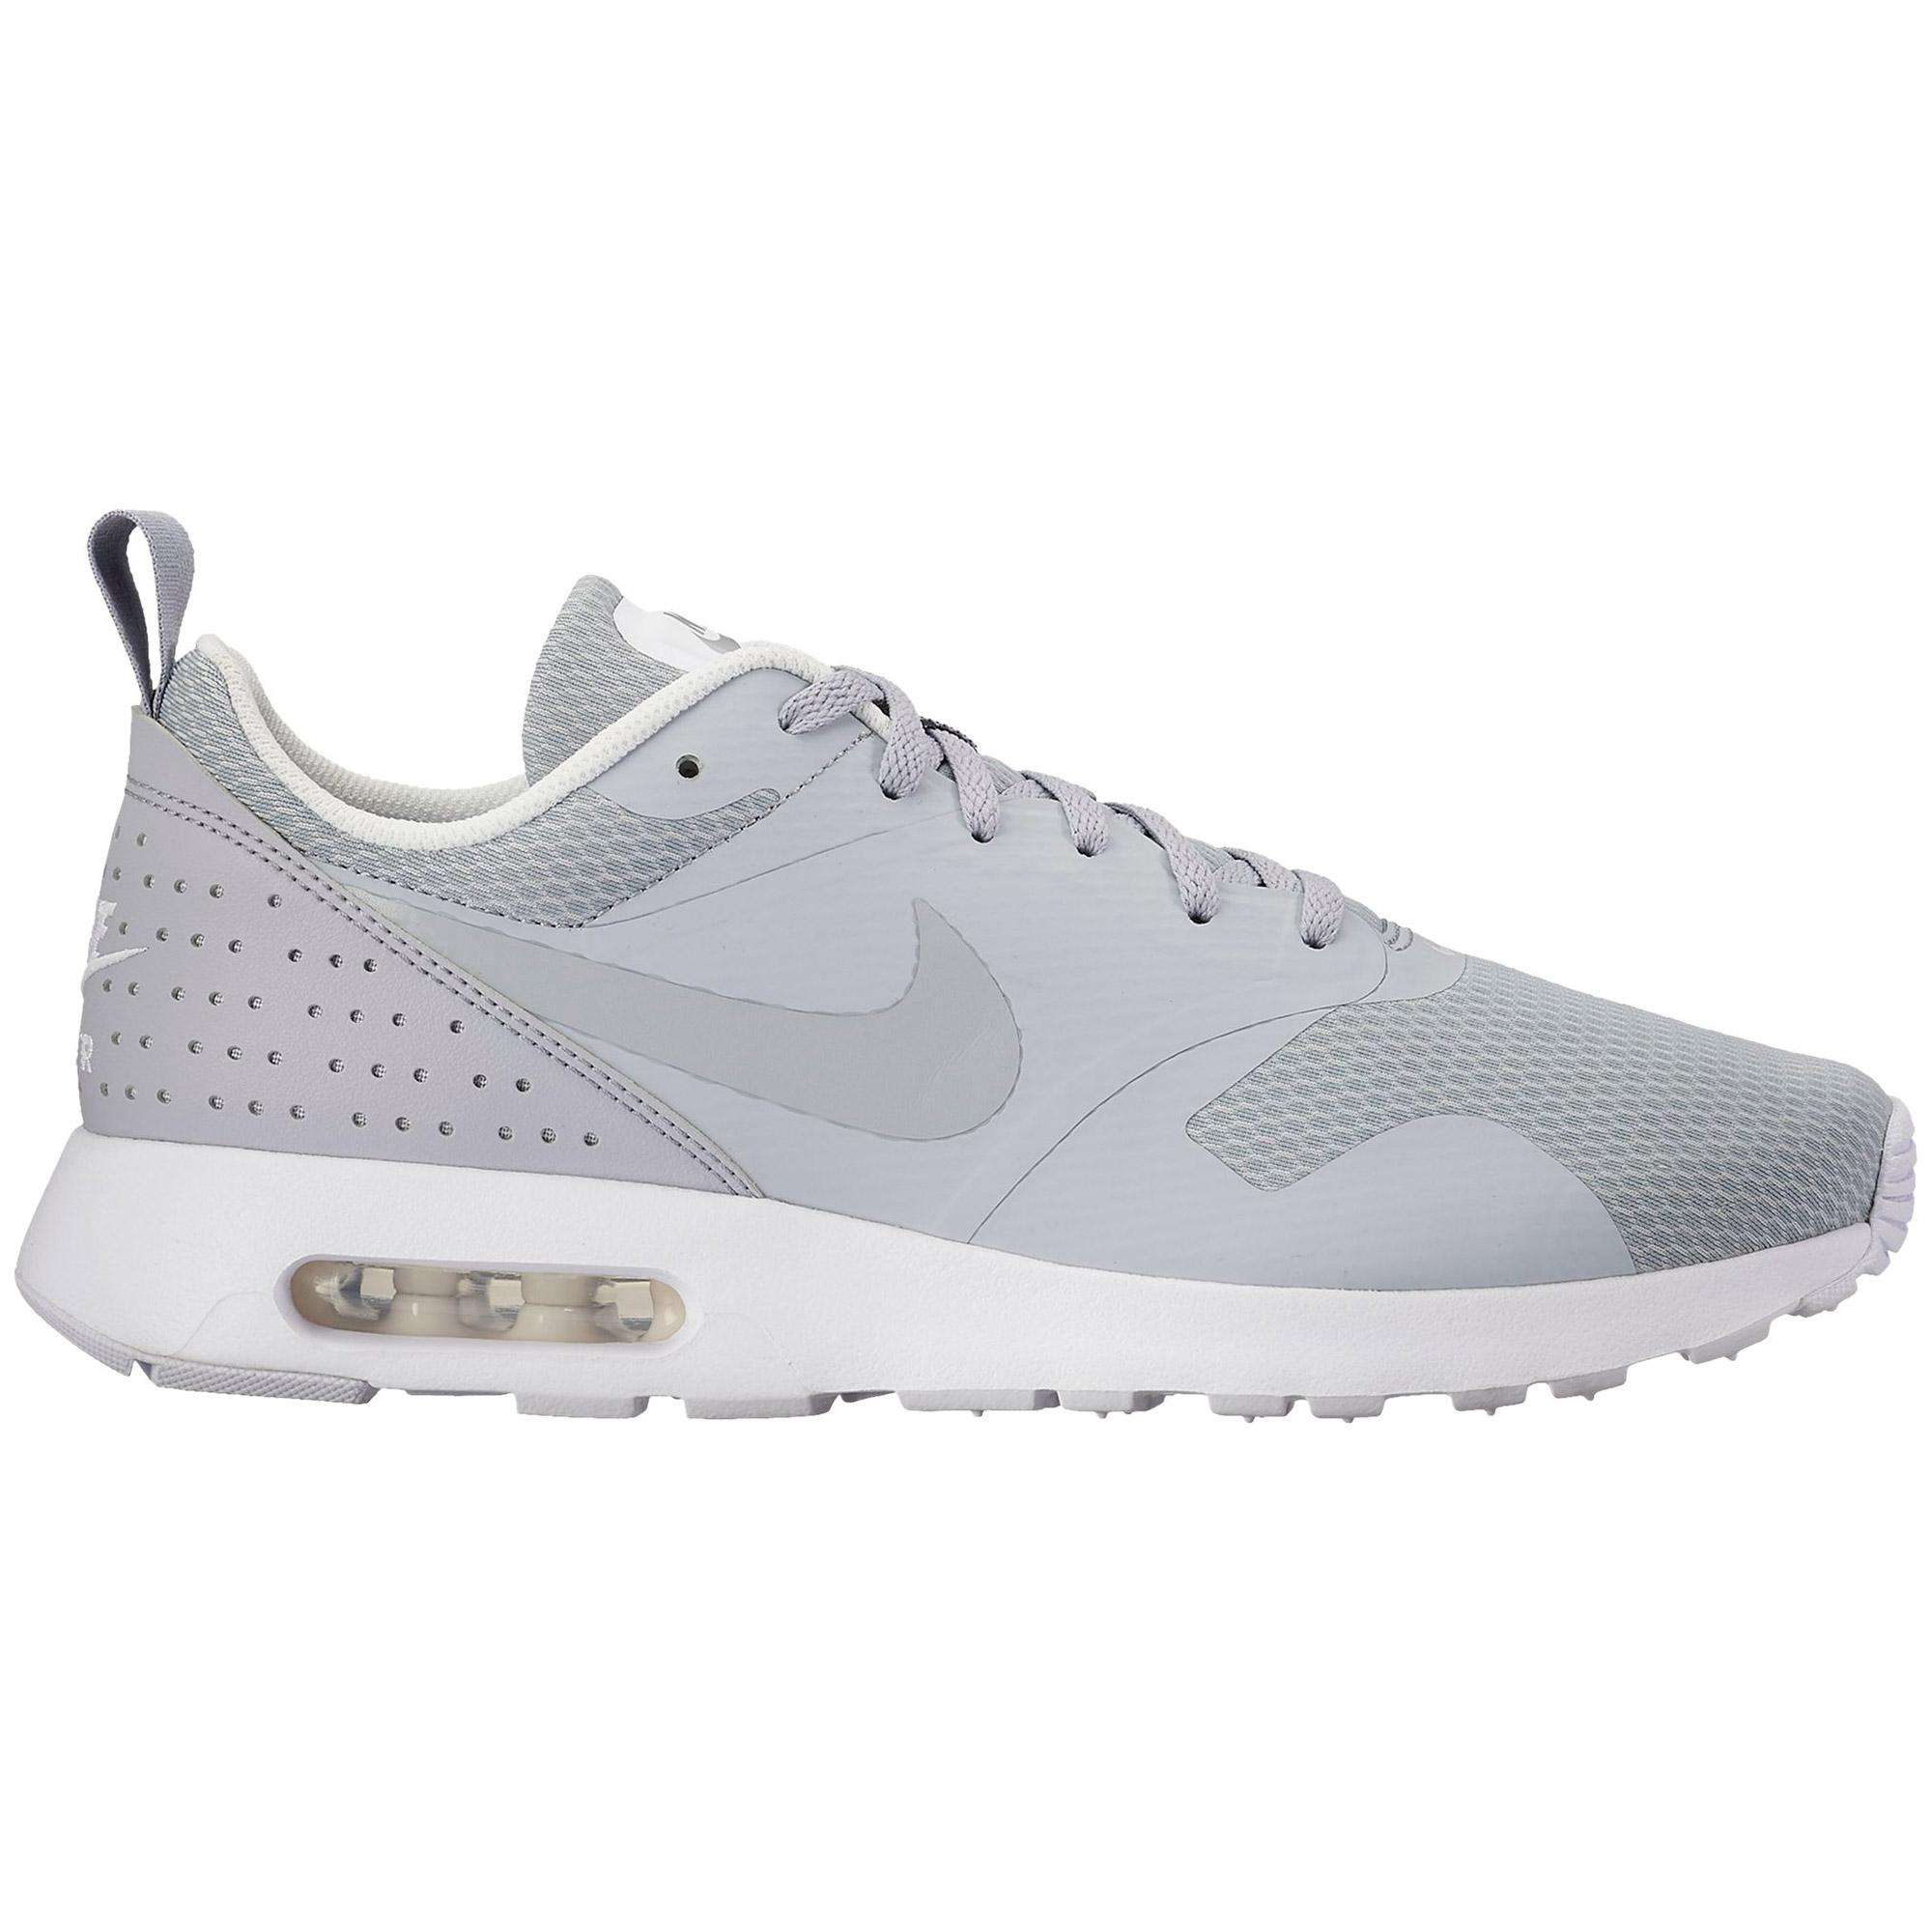 half off a25dc 133ec Nike Mens Air Max Tavas Running Shoes - Wolf GreyWhite - Ten